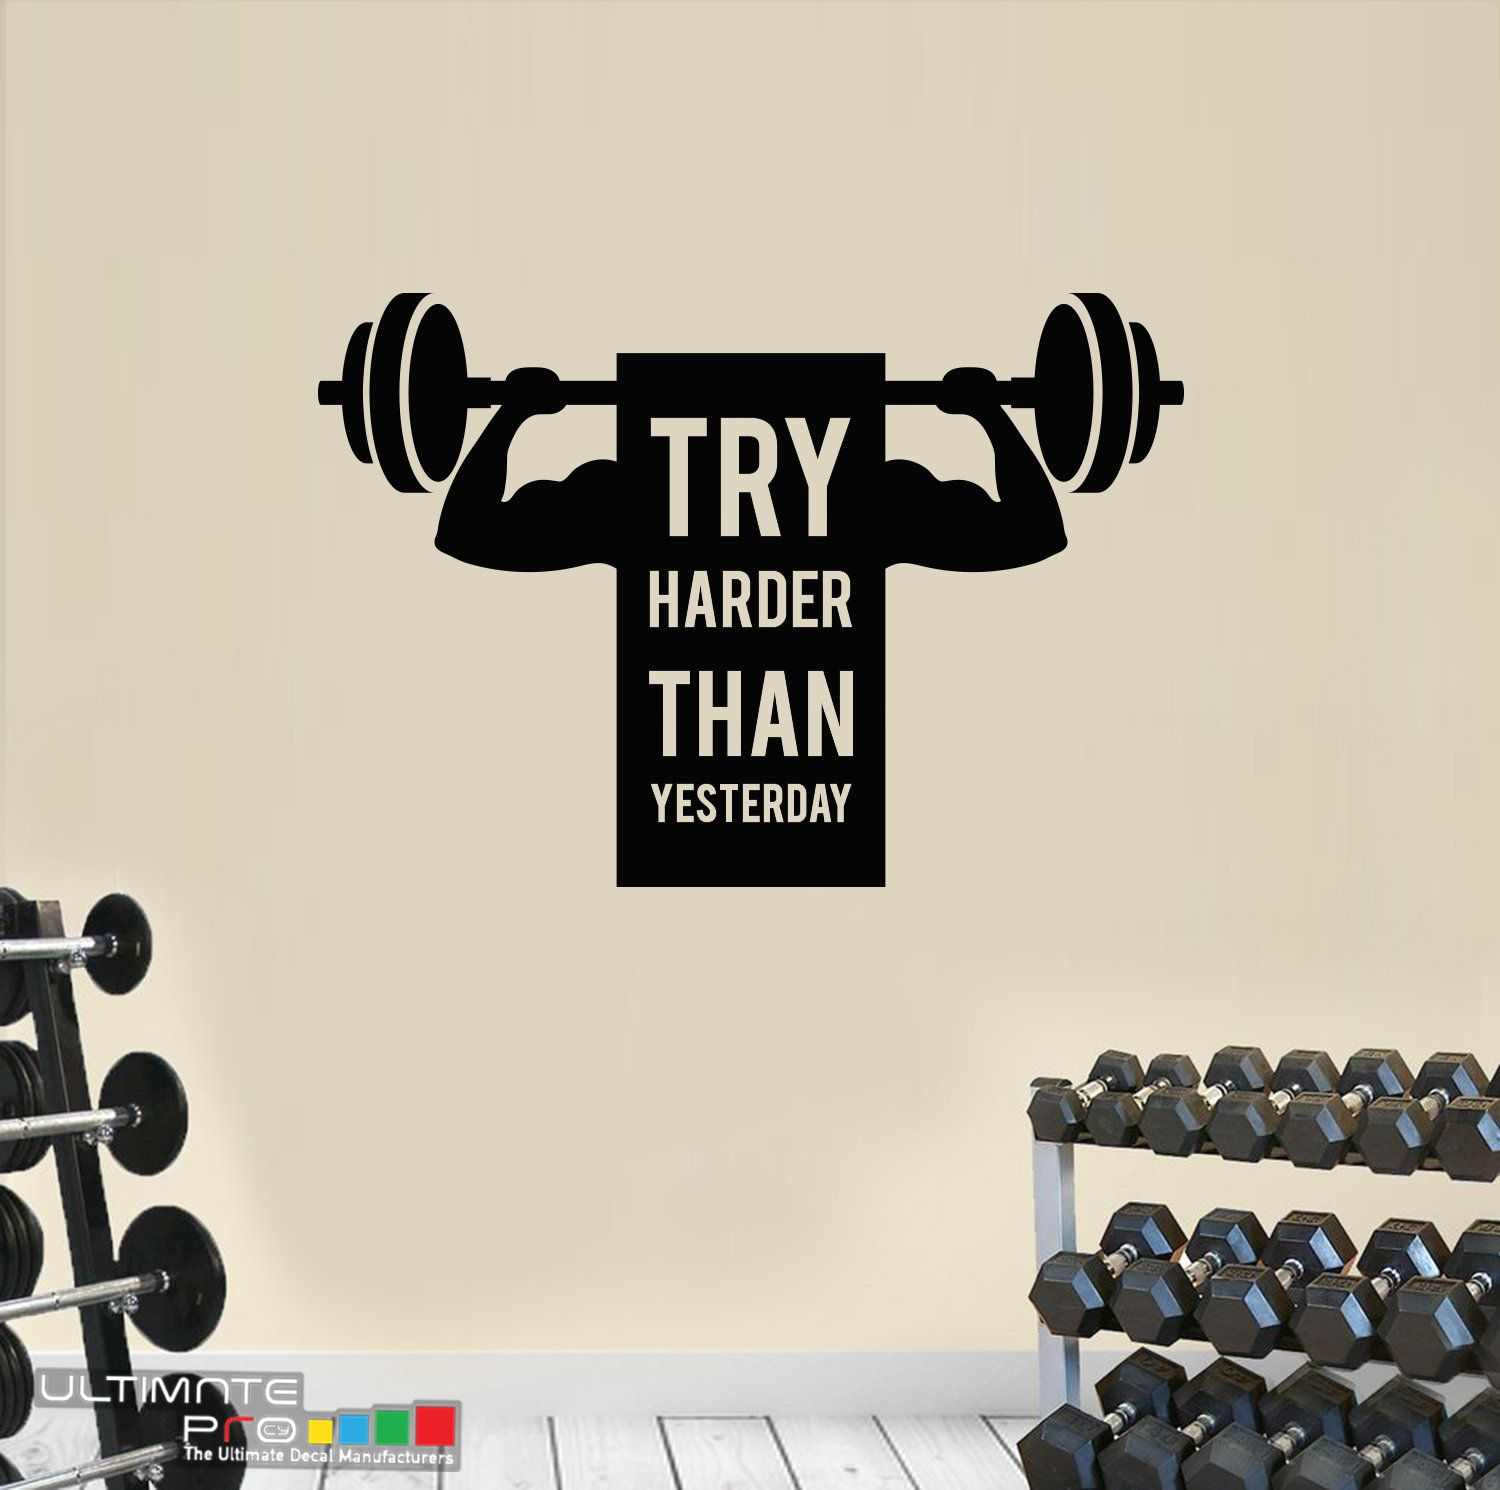 Quotes Wall Sticker Decal For Motivation Gym Decal Crossfit Workout Weight Lift Abs Modern Design Try Harde Wall Quotes Decals Wall Stickers Quotes Wall Quotes [ 1490 x 1500 Pixel ]